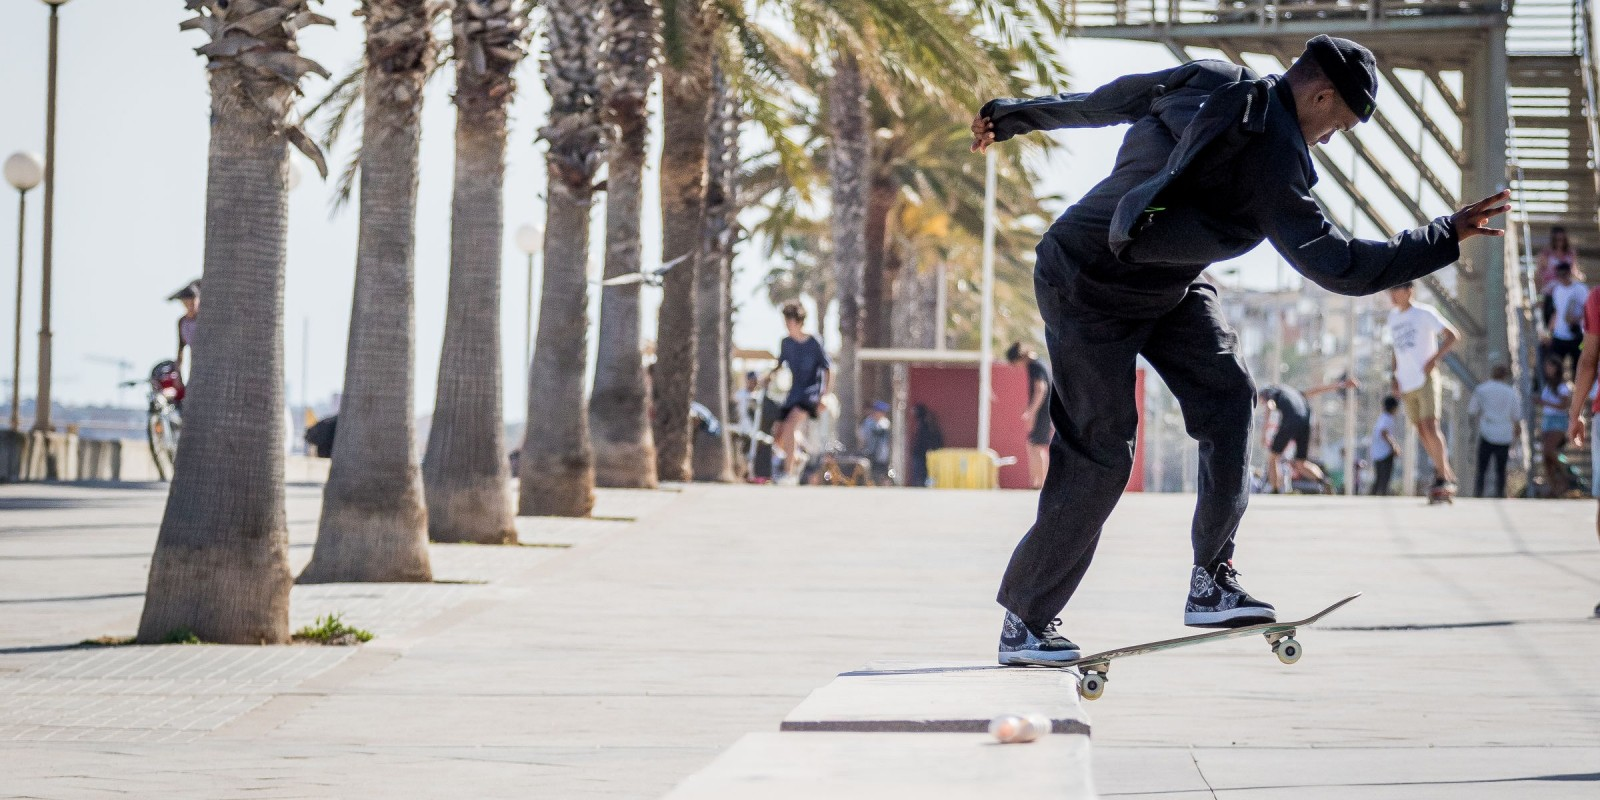 Lifestyle shots at Barcelona with Gabriel Fortunato